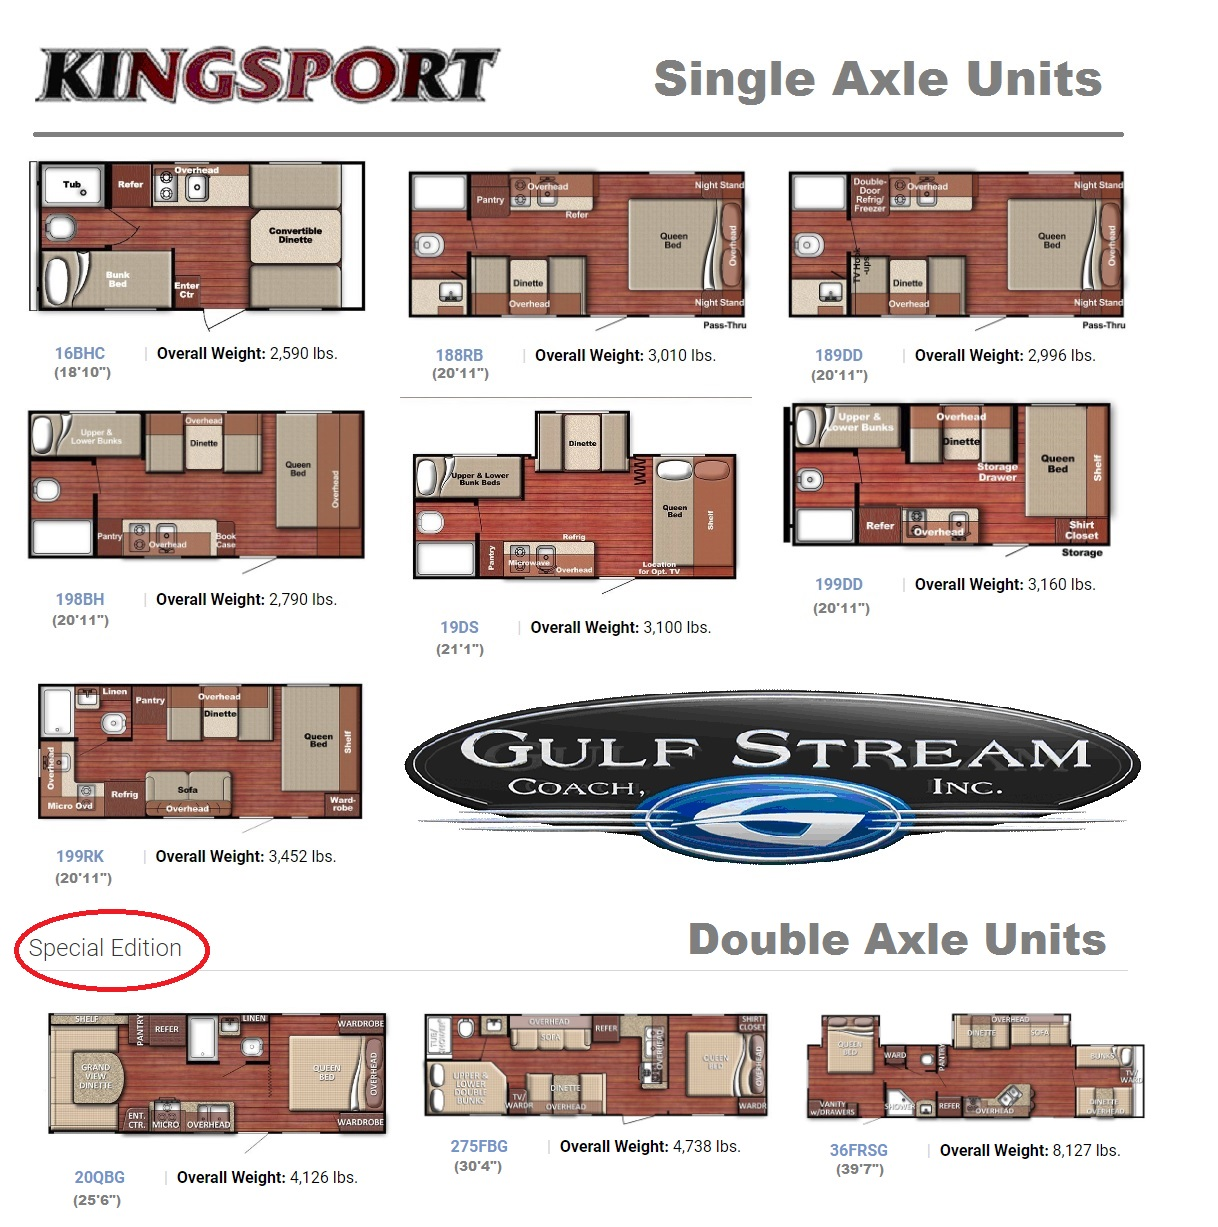 Kingsport Single Axle floor plans